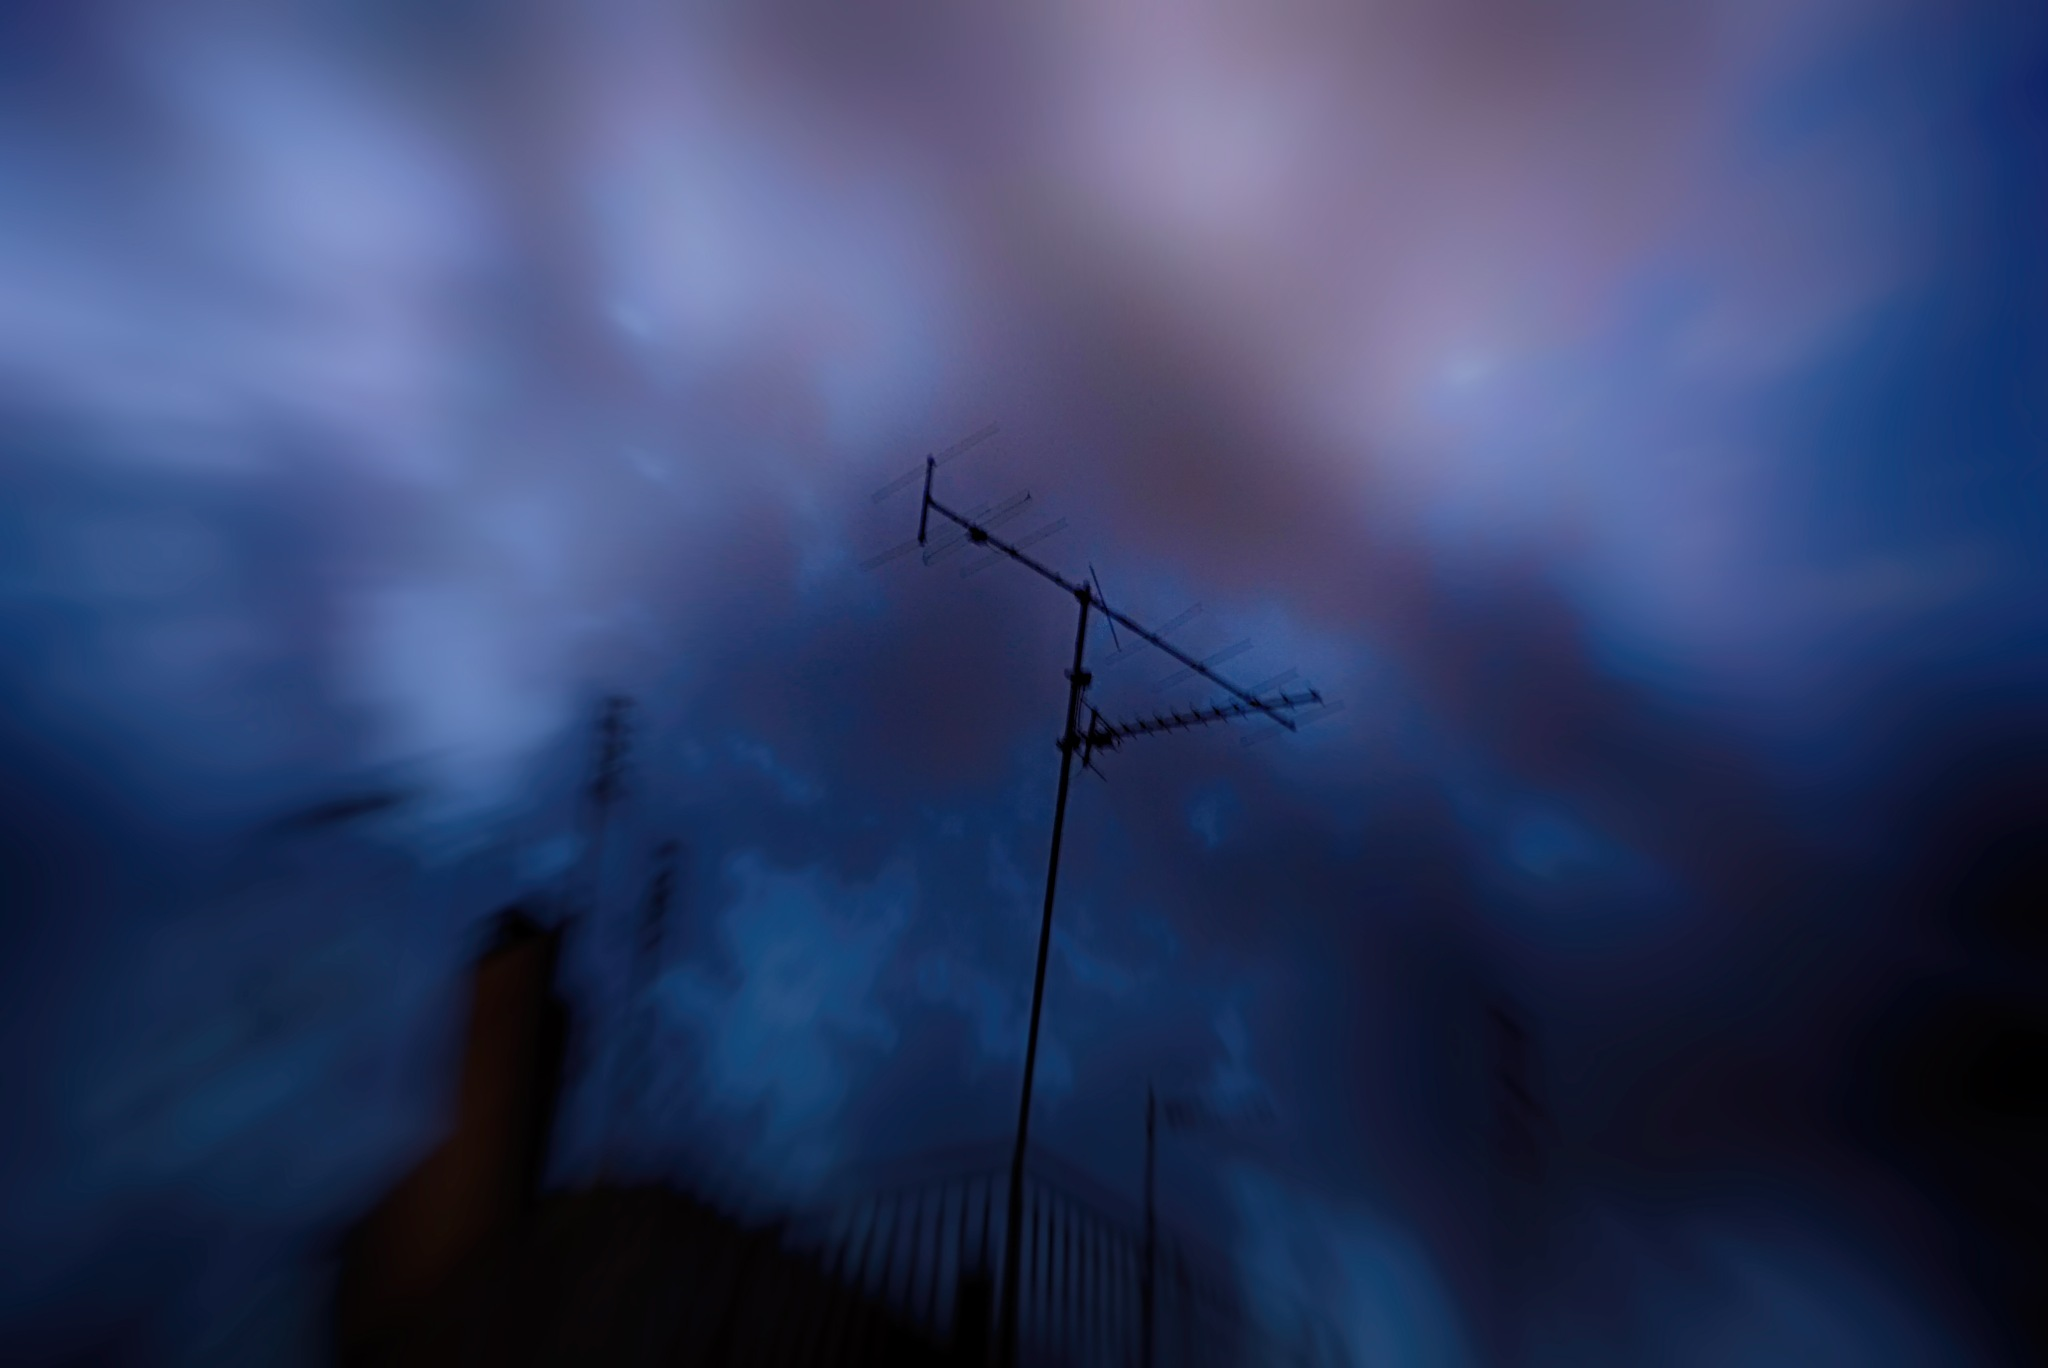 antennas in sunset by fractal